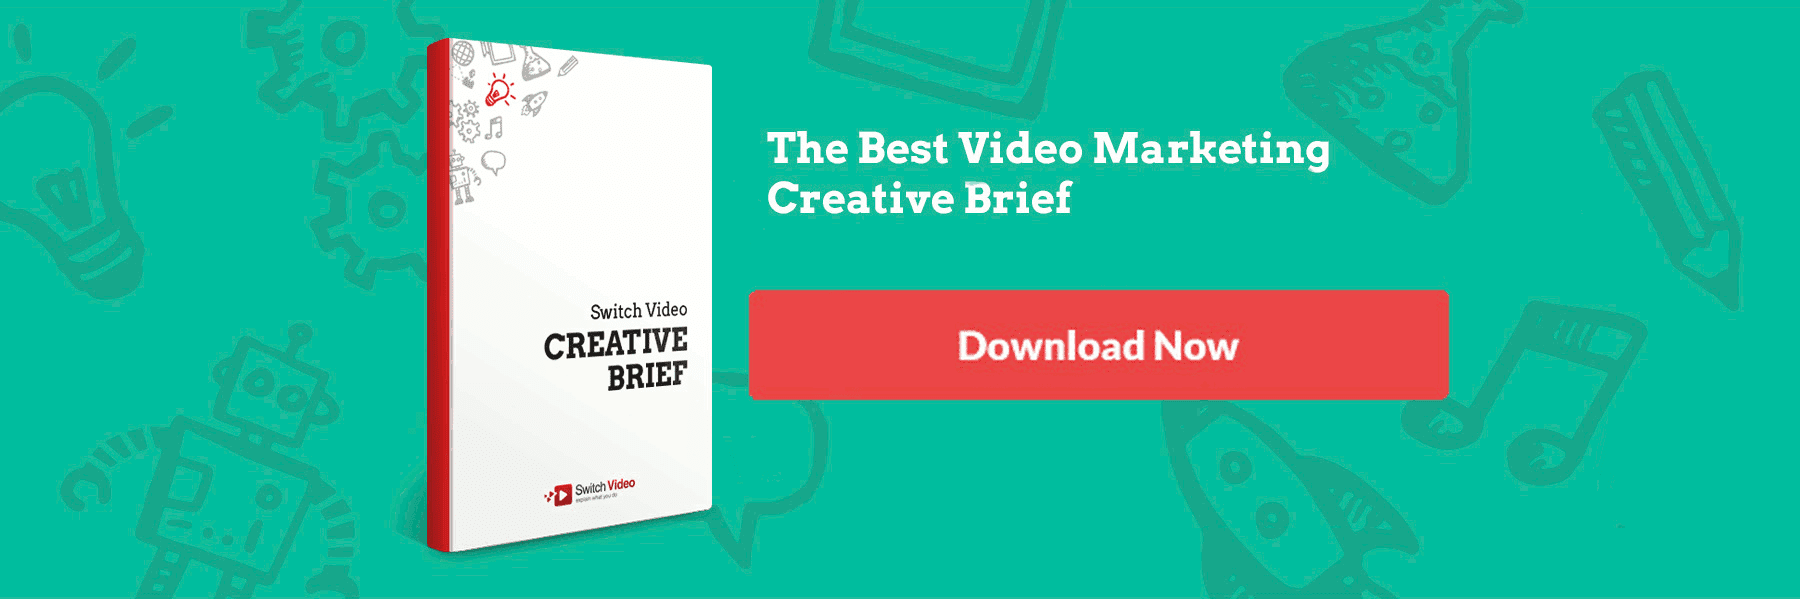 Video Marketing Creative Brief, Switch Video